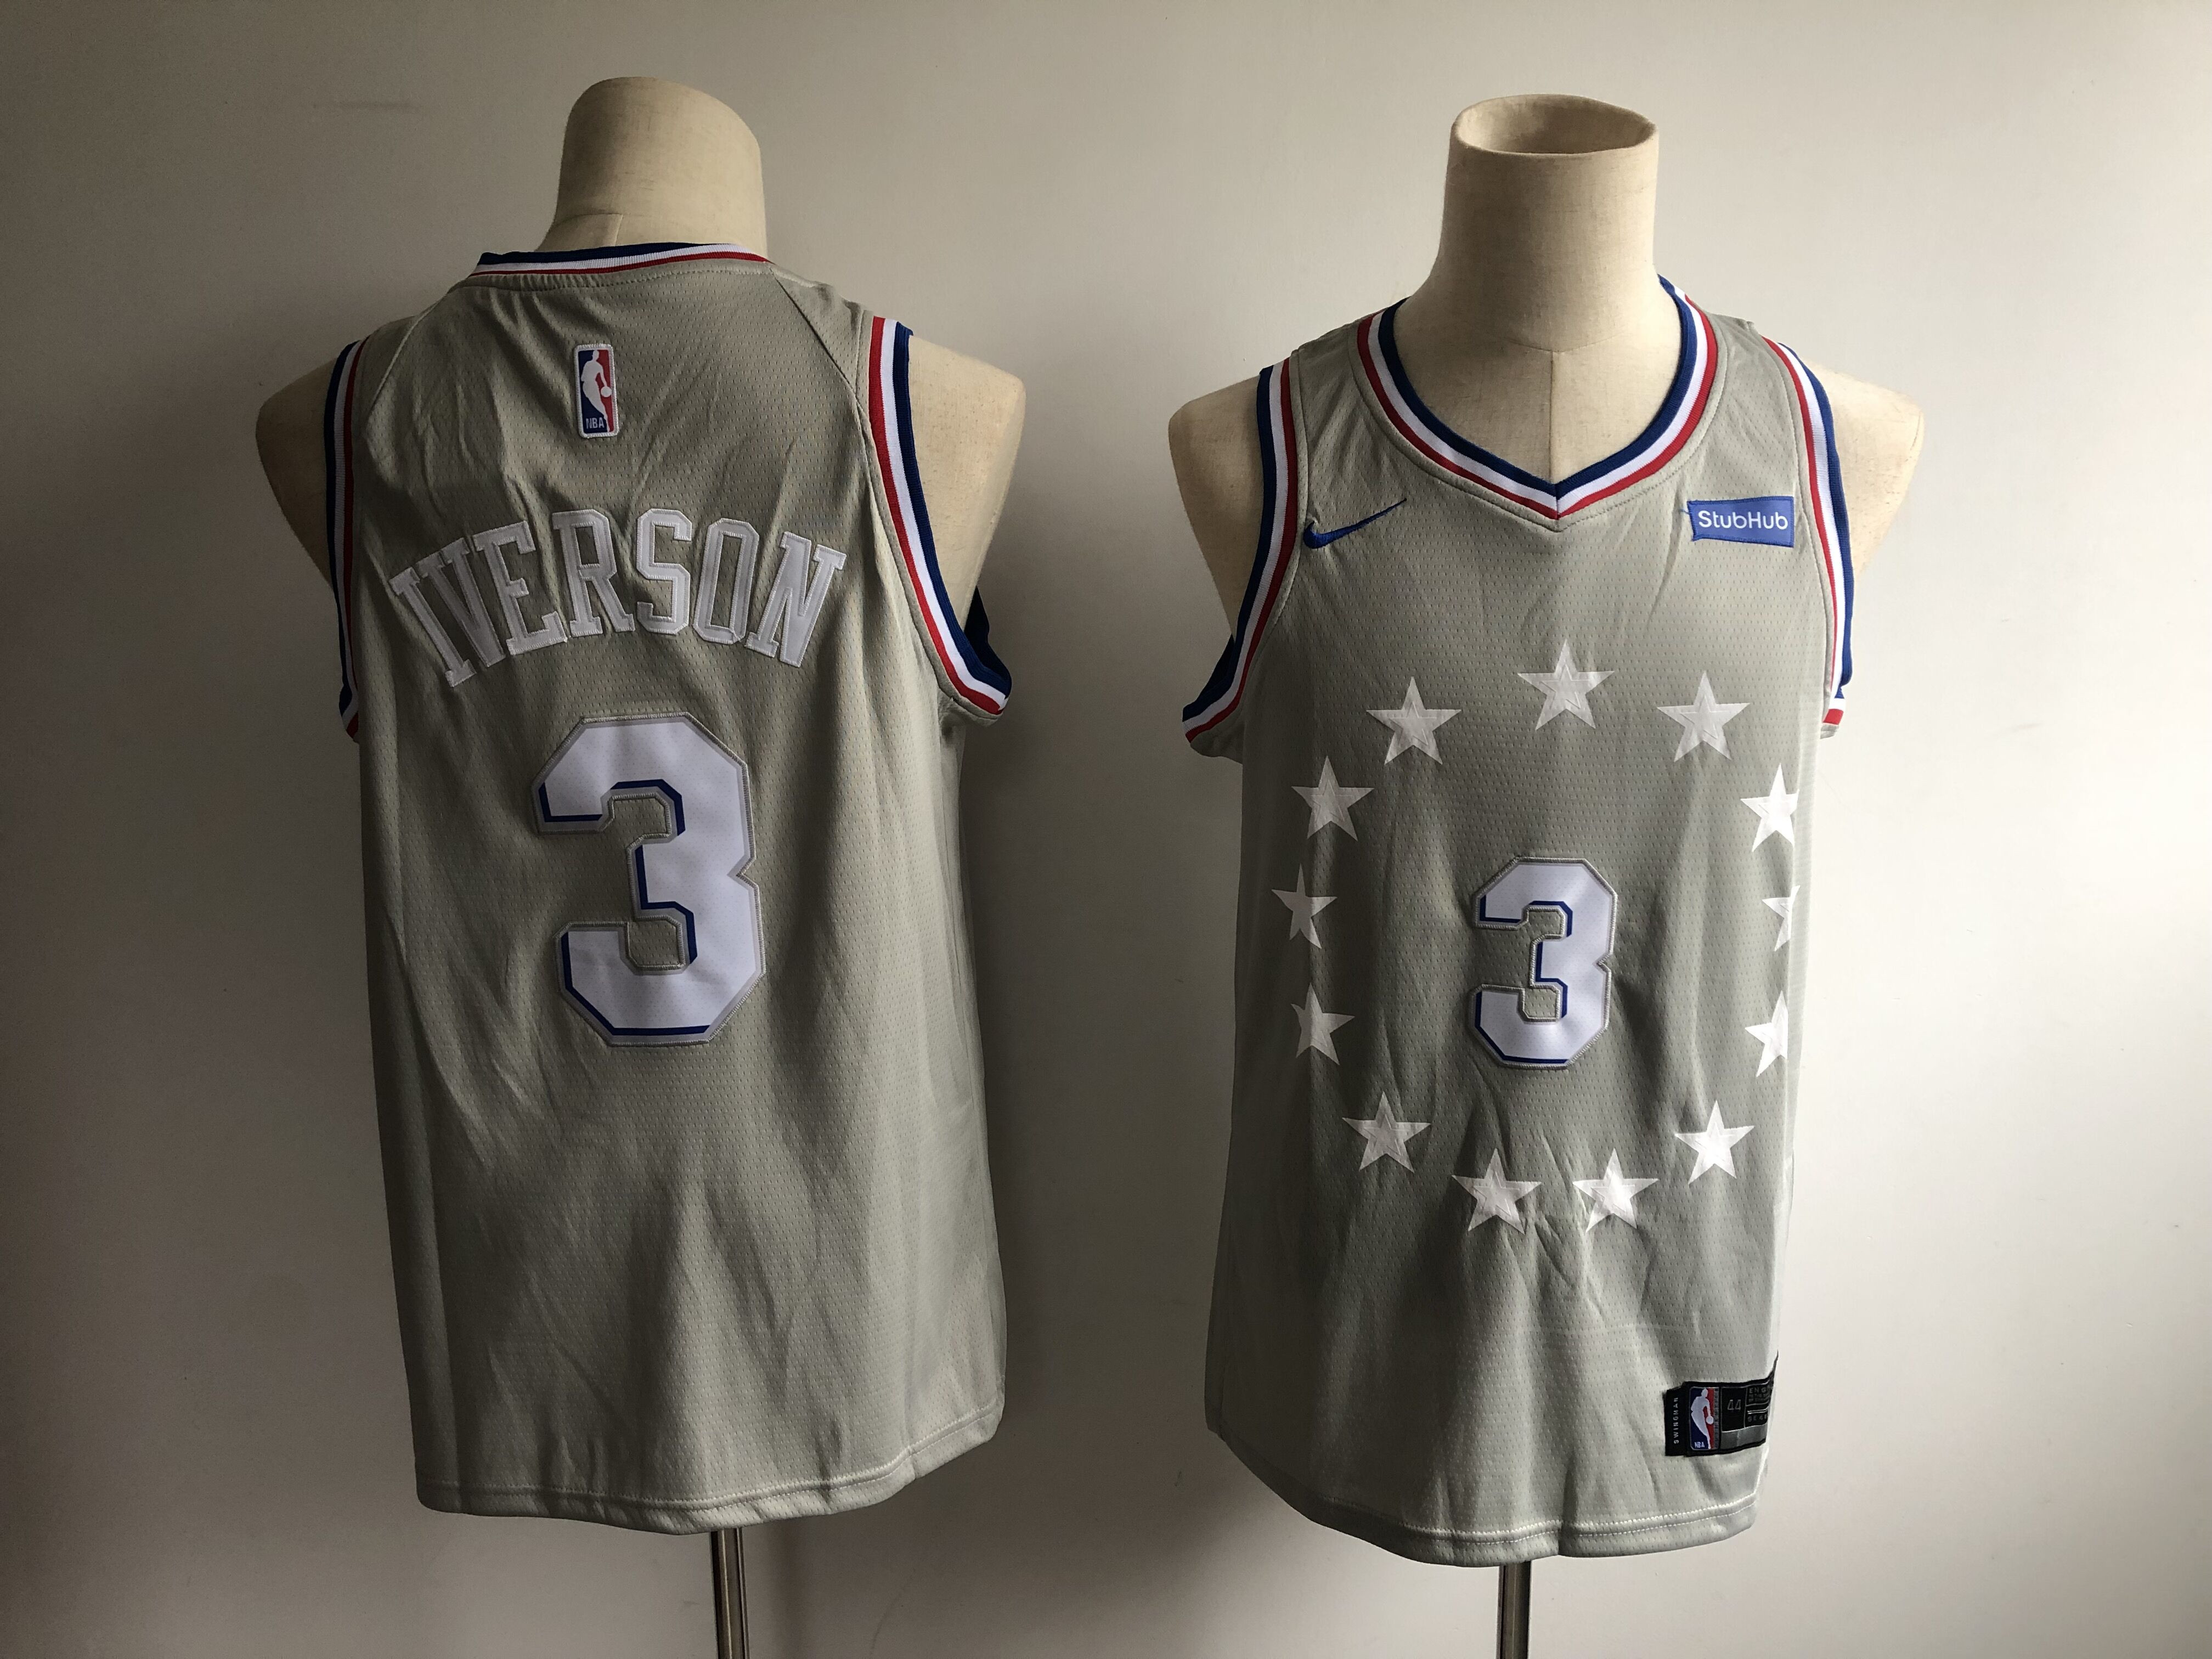 76ers 3 Allen Iverson Gray 2018-19 City Edition Nike Swingman Jersey